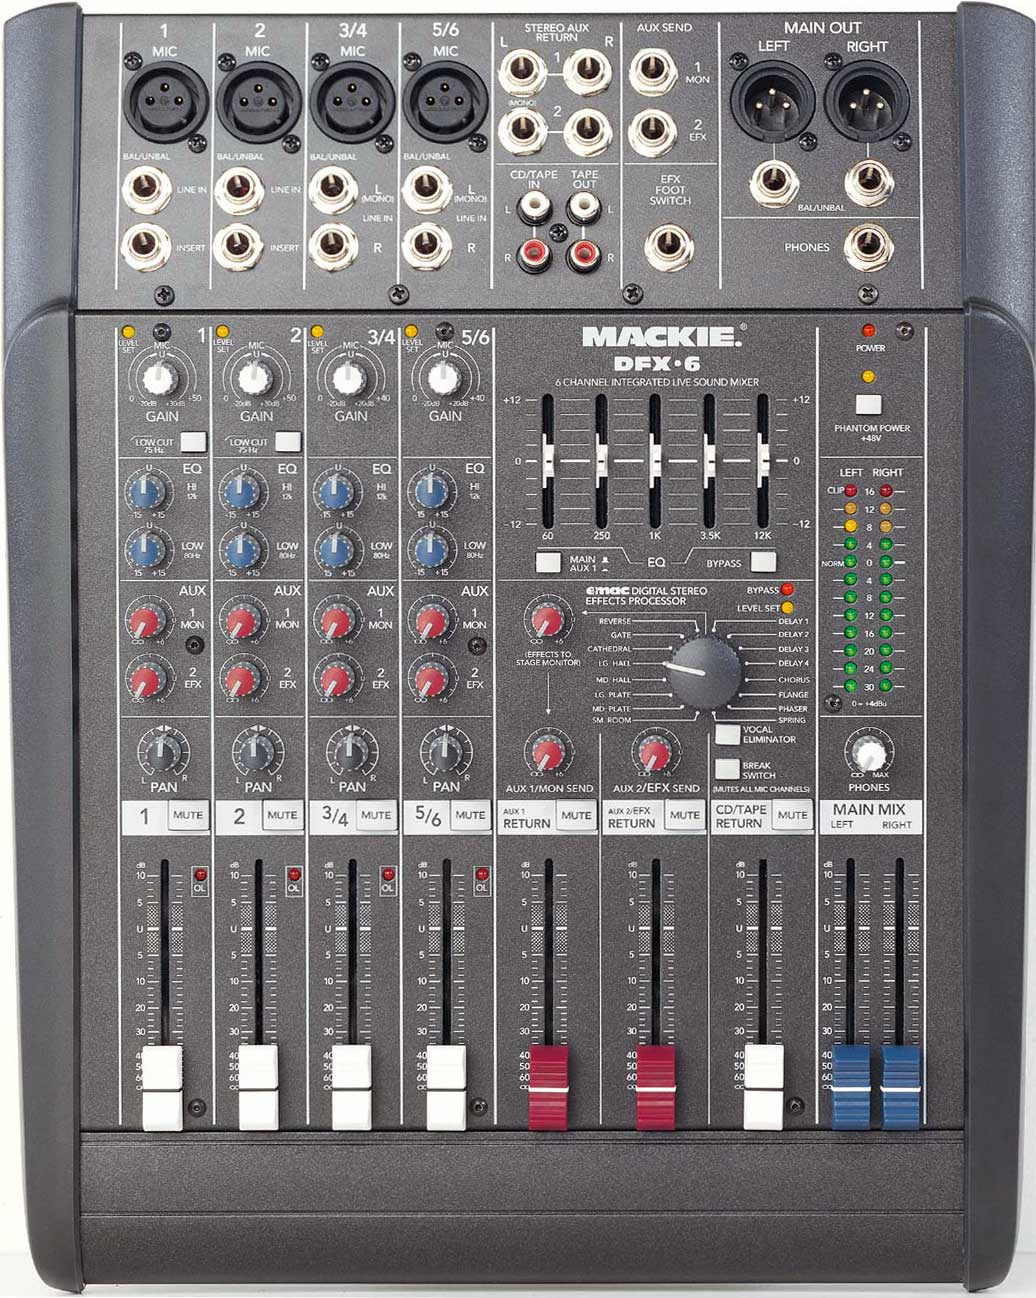 mackie dfx 6 sound mixer review. Black Bedroom Furniture Sets. Home Design Ideas